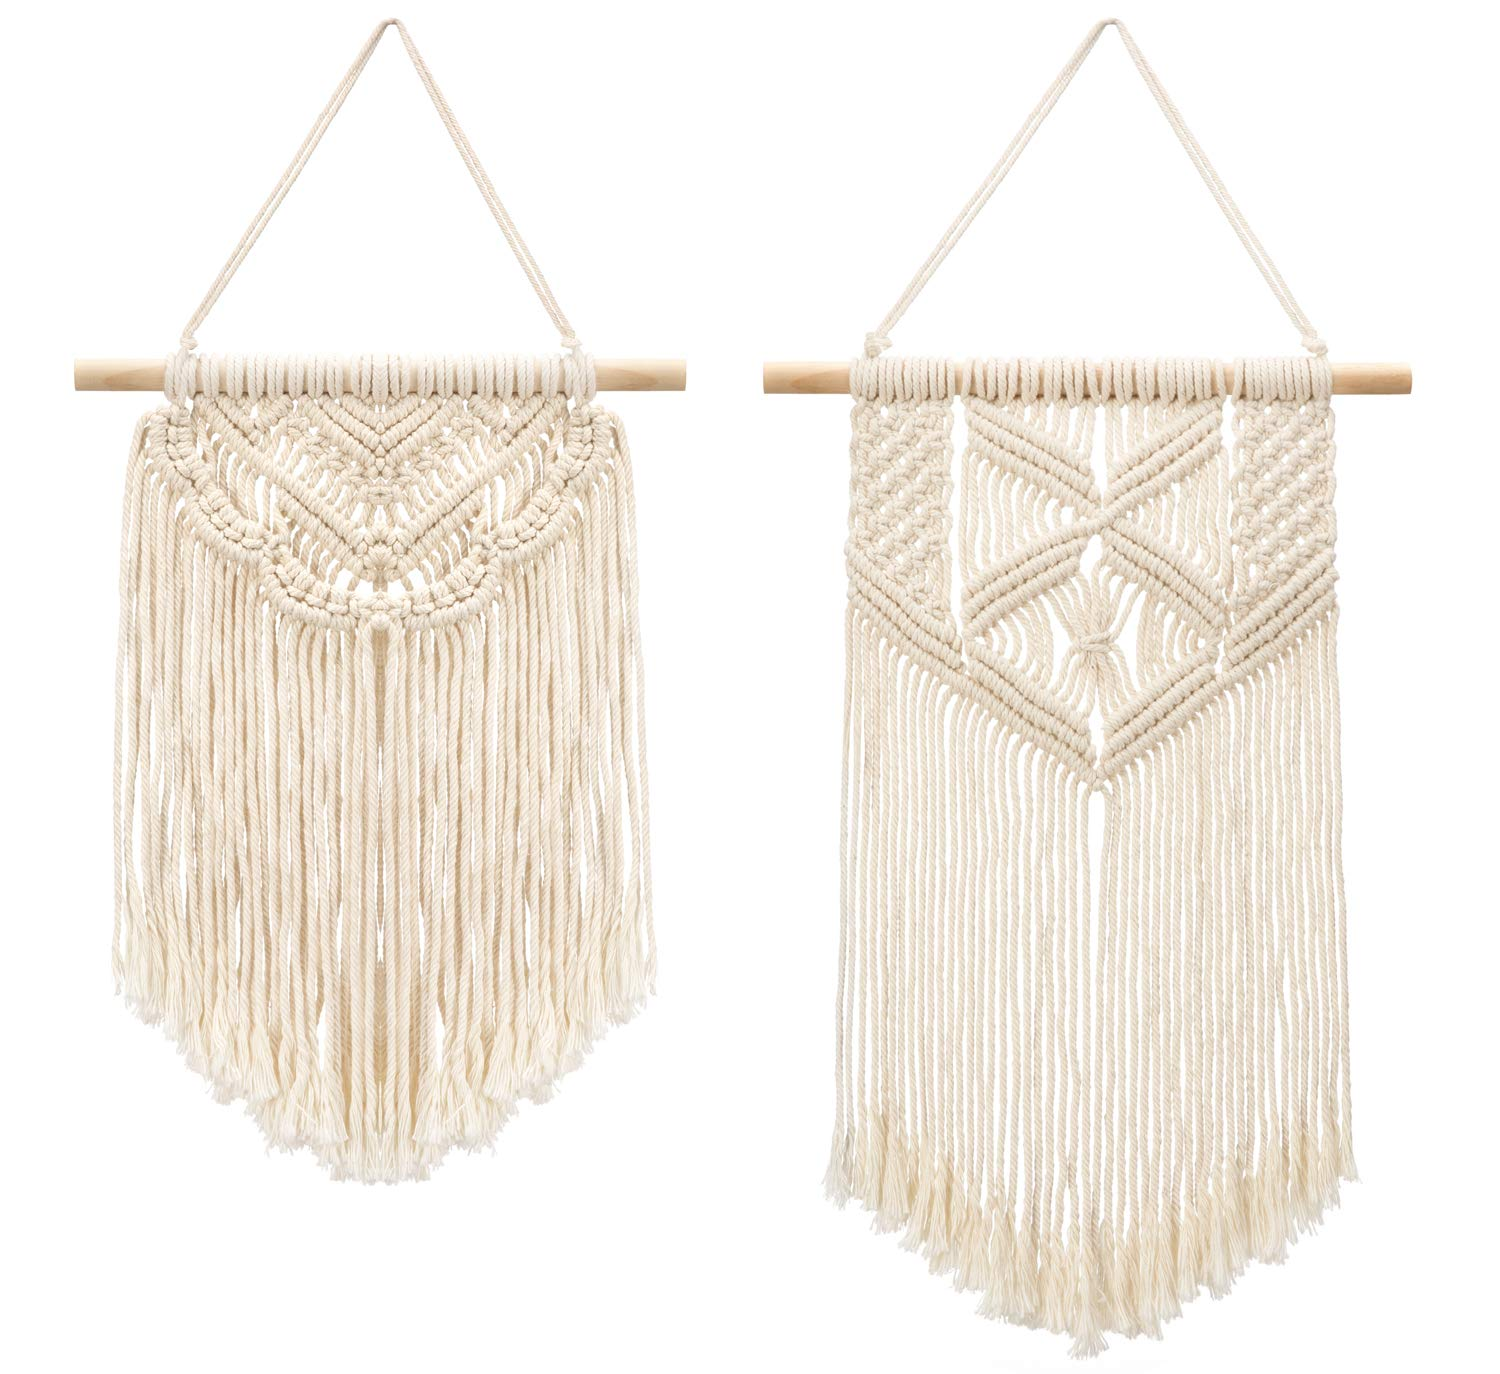 Mkono 2 Pcs Macrame Wall Hanging Small Art Woven Wall Decor Boho Chic Home Decoration for Apartment Bedroom Living Room Gallery, 13'' L x 10'' W and 16'' L x 10'' W